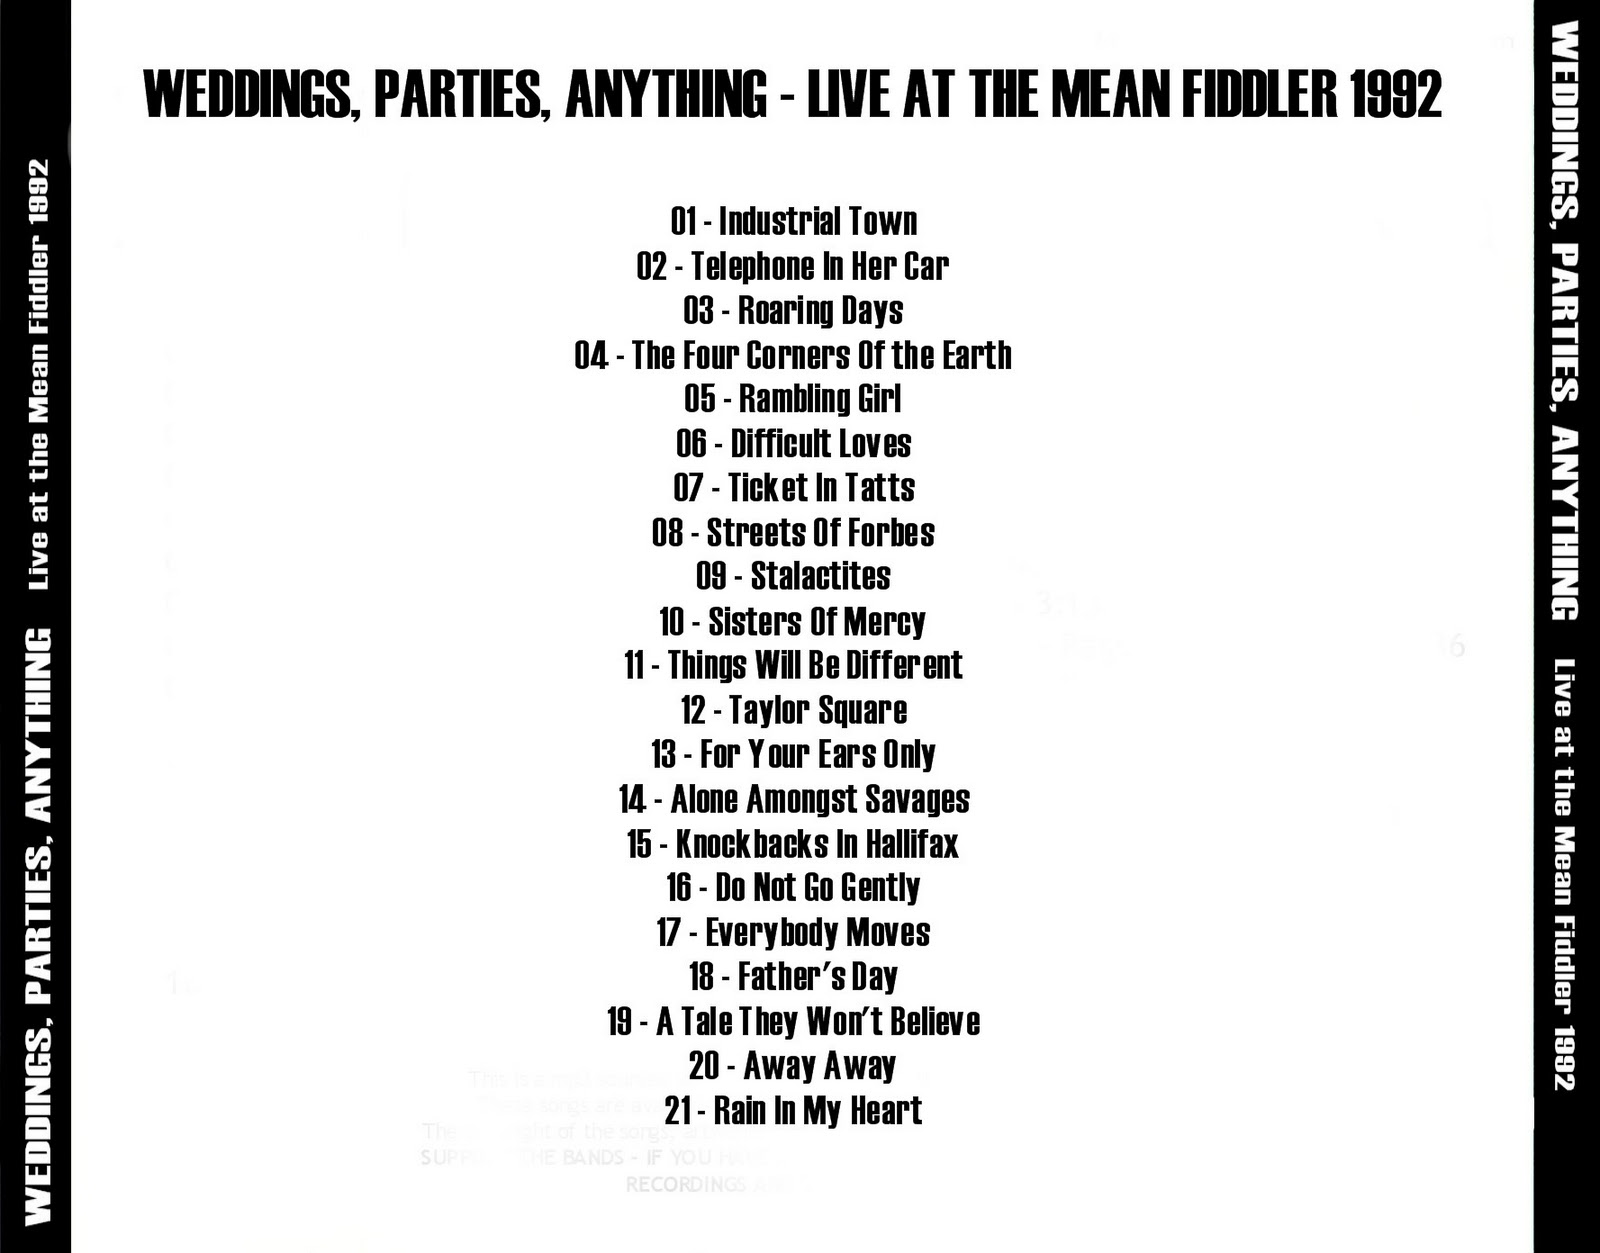 Roio weddings parties anything live at the mean fiddler 1992 roio weddings parties anything live at the mean fiddler 1992 stopboris Choice Image